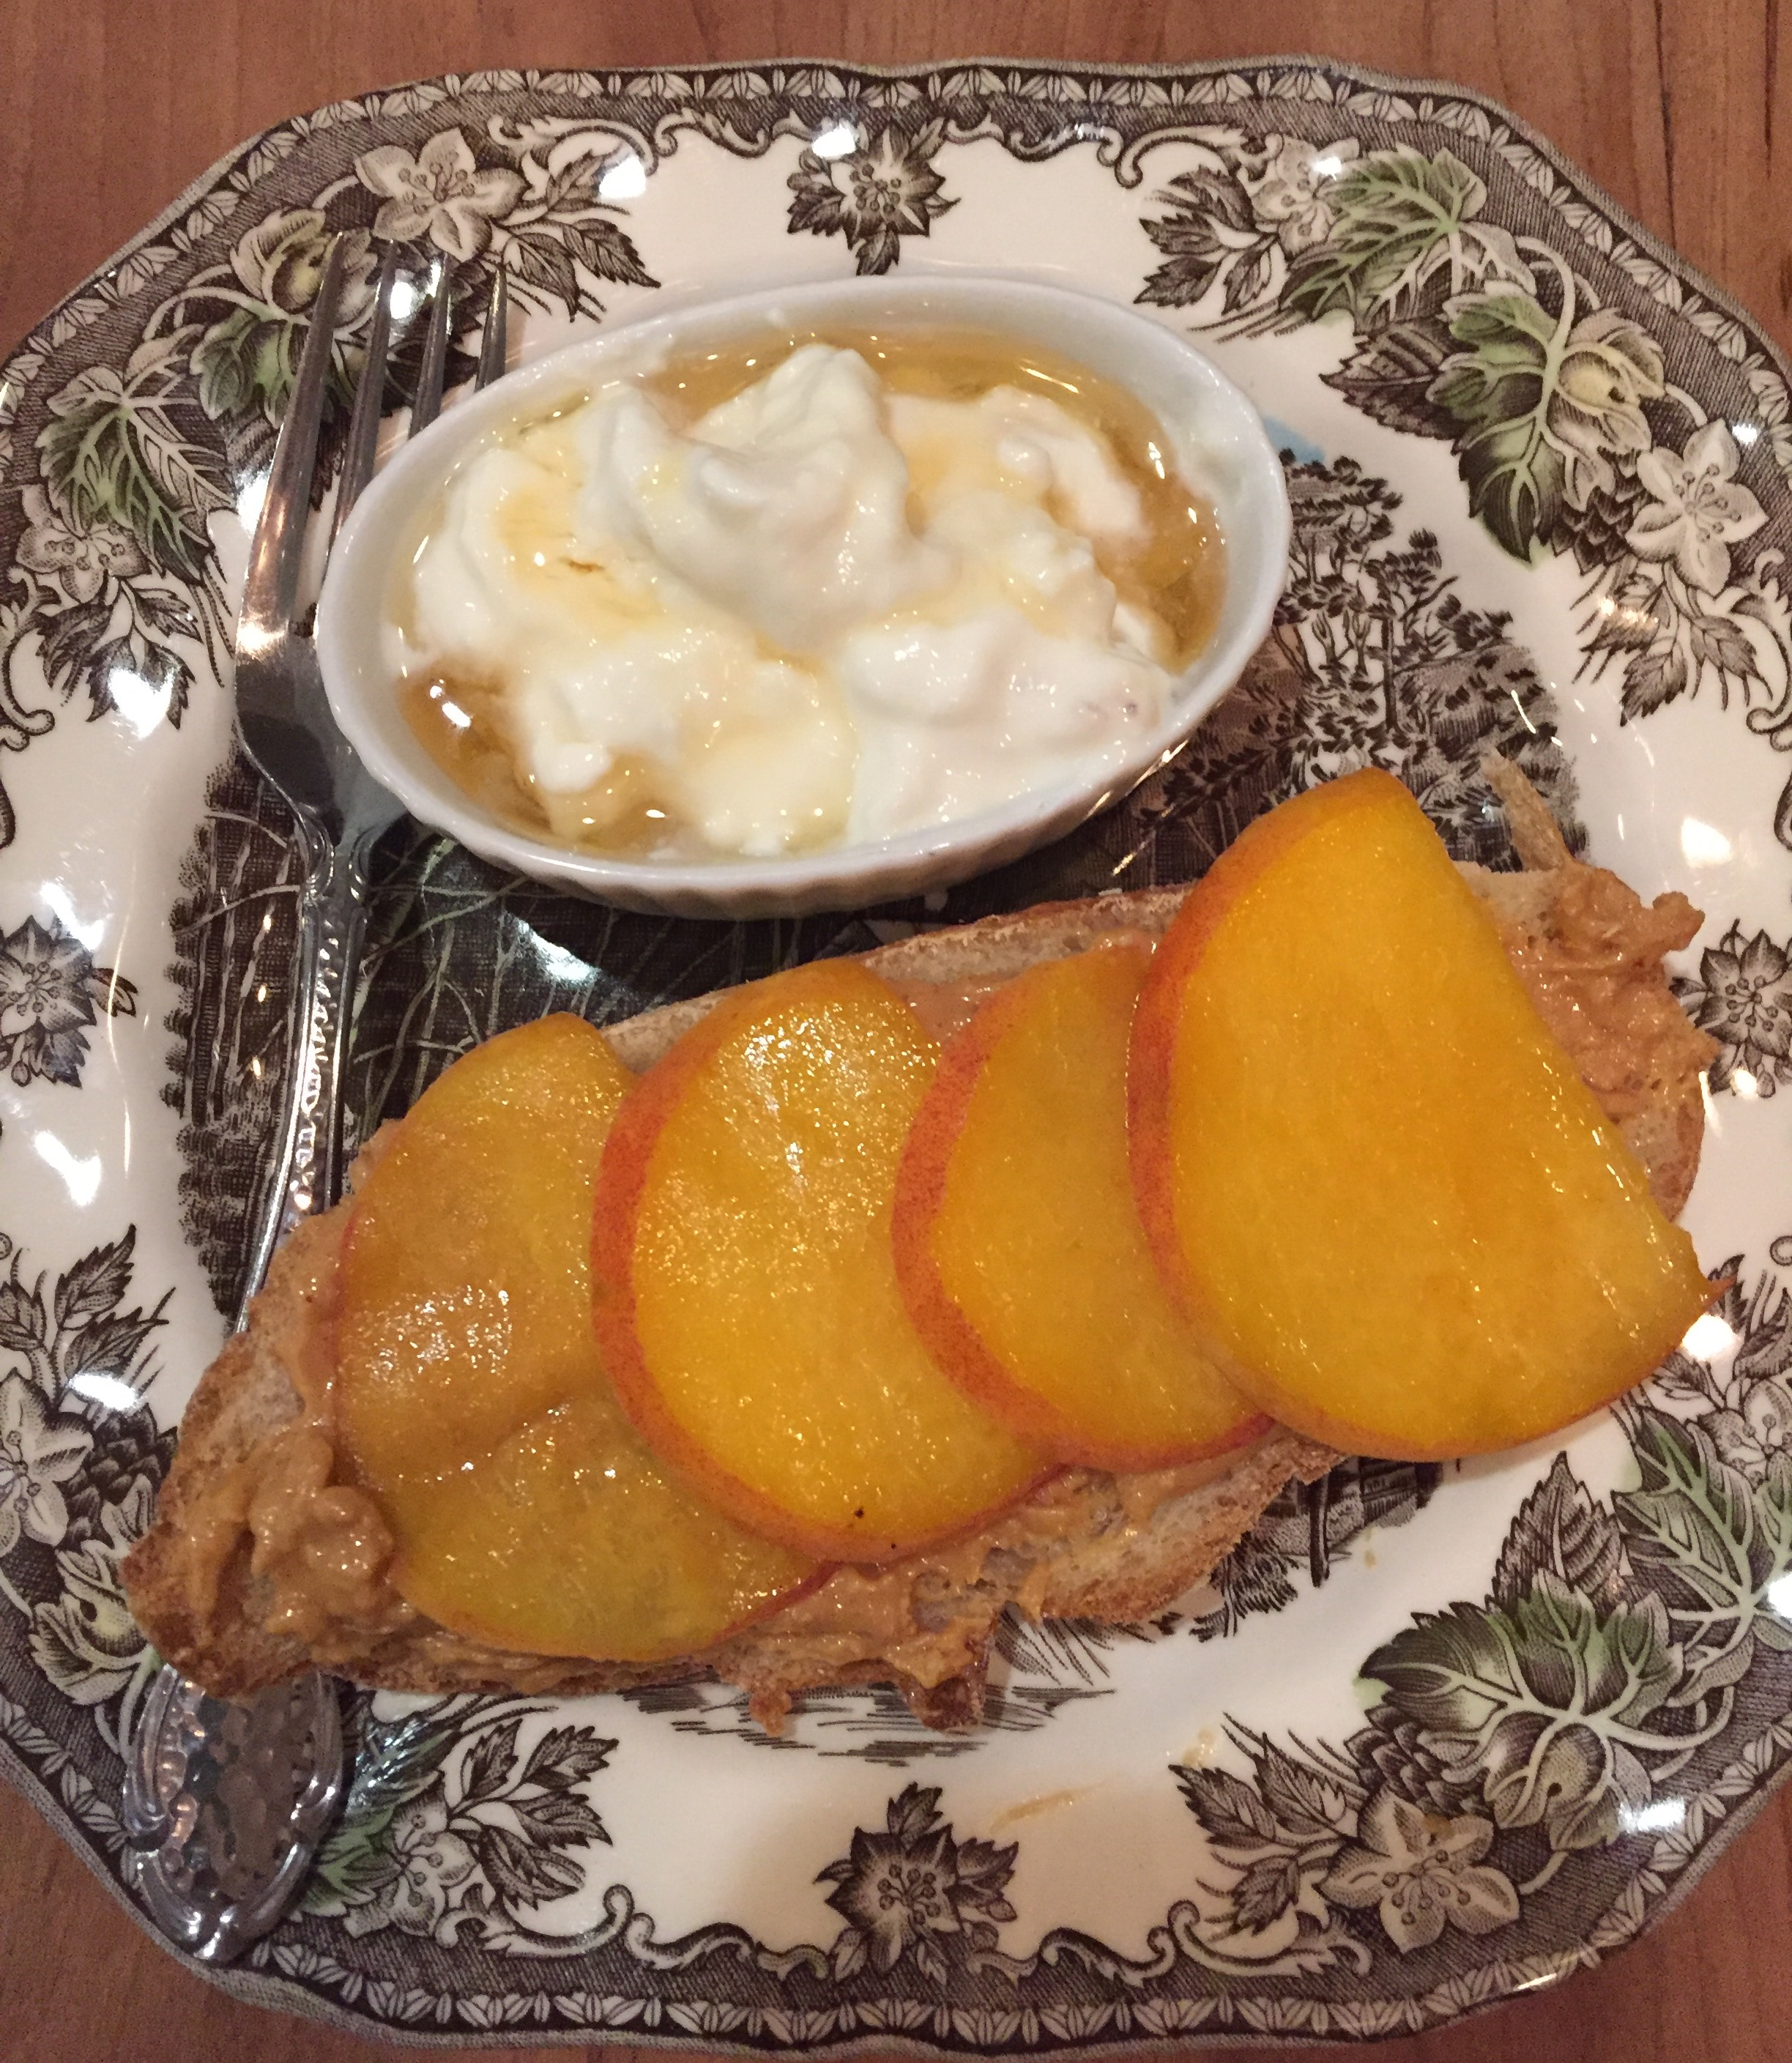 Yogurt peanut butter on toast with peaches breakfast